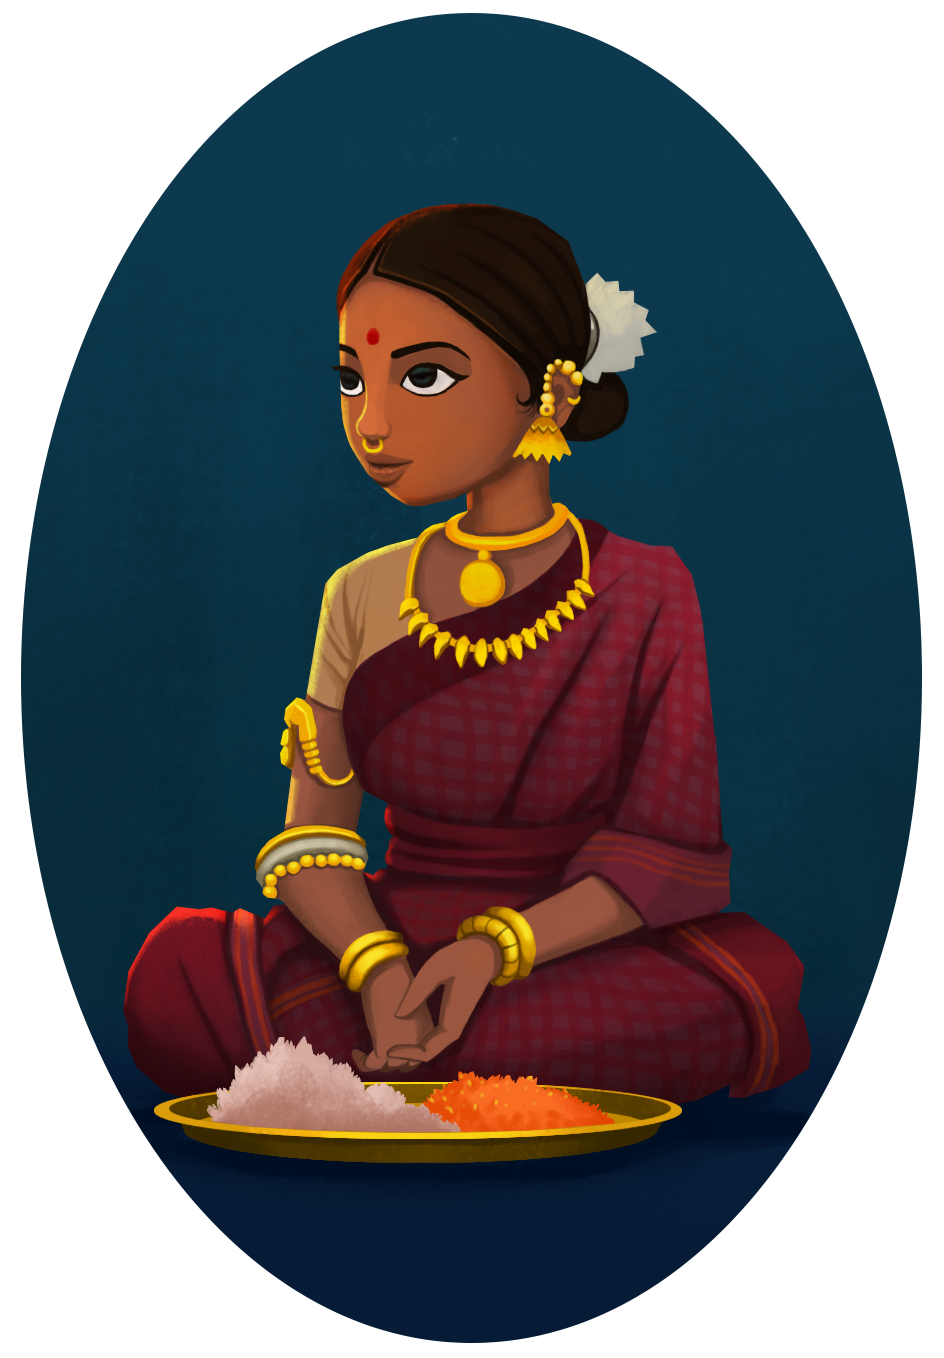 Indian girl selling flowers. Character Design India art